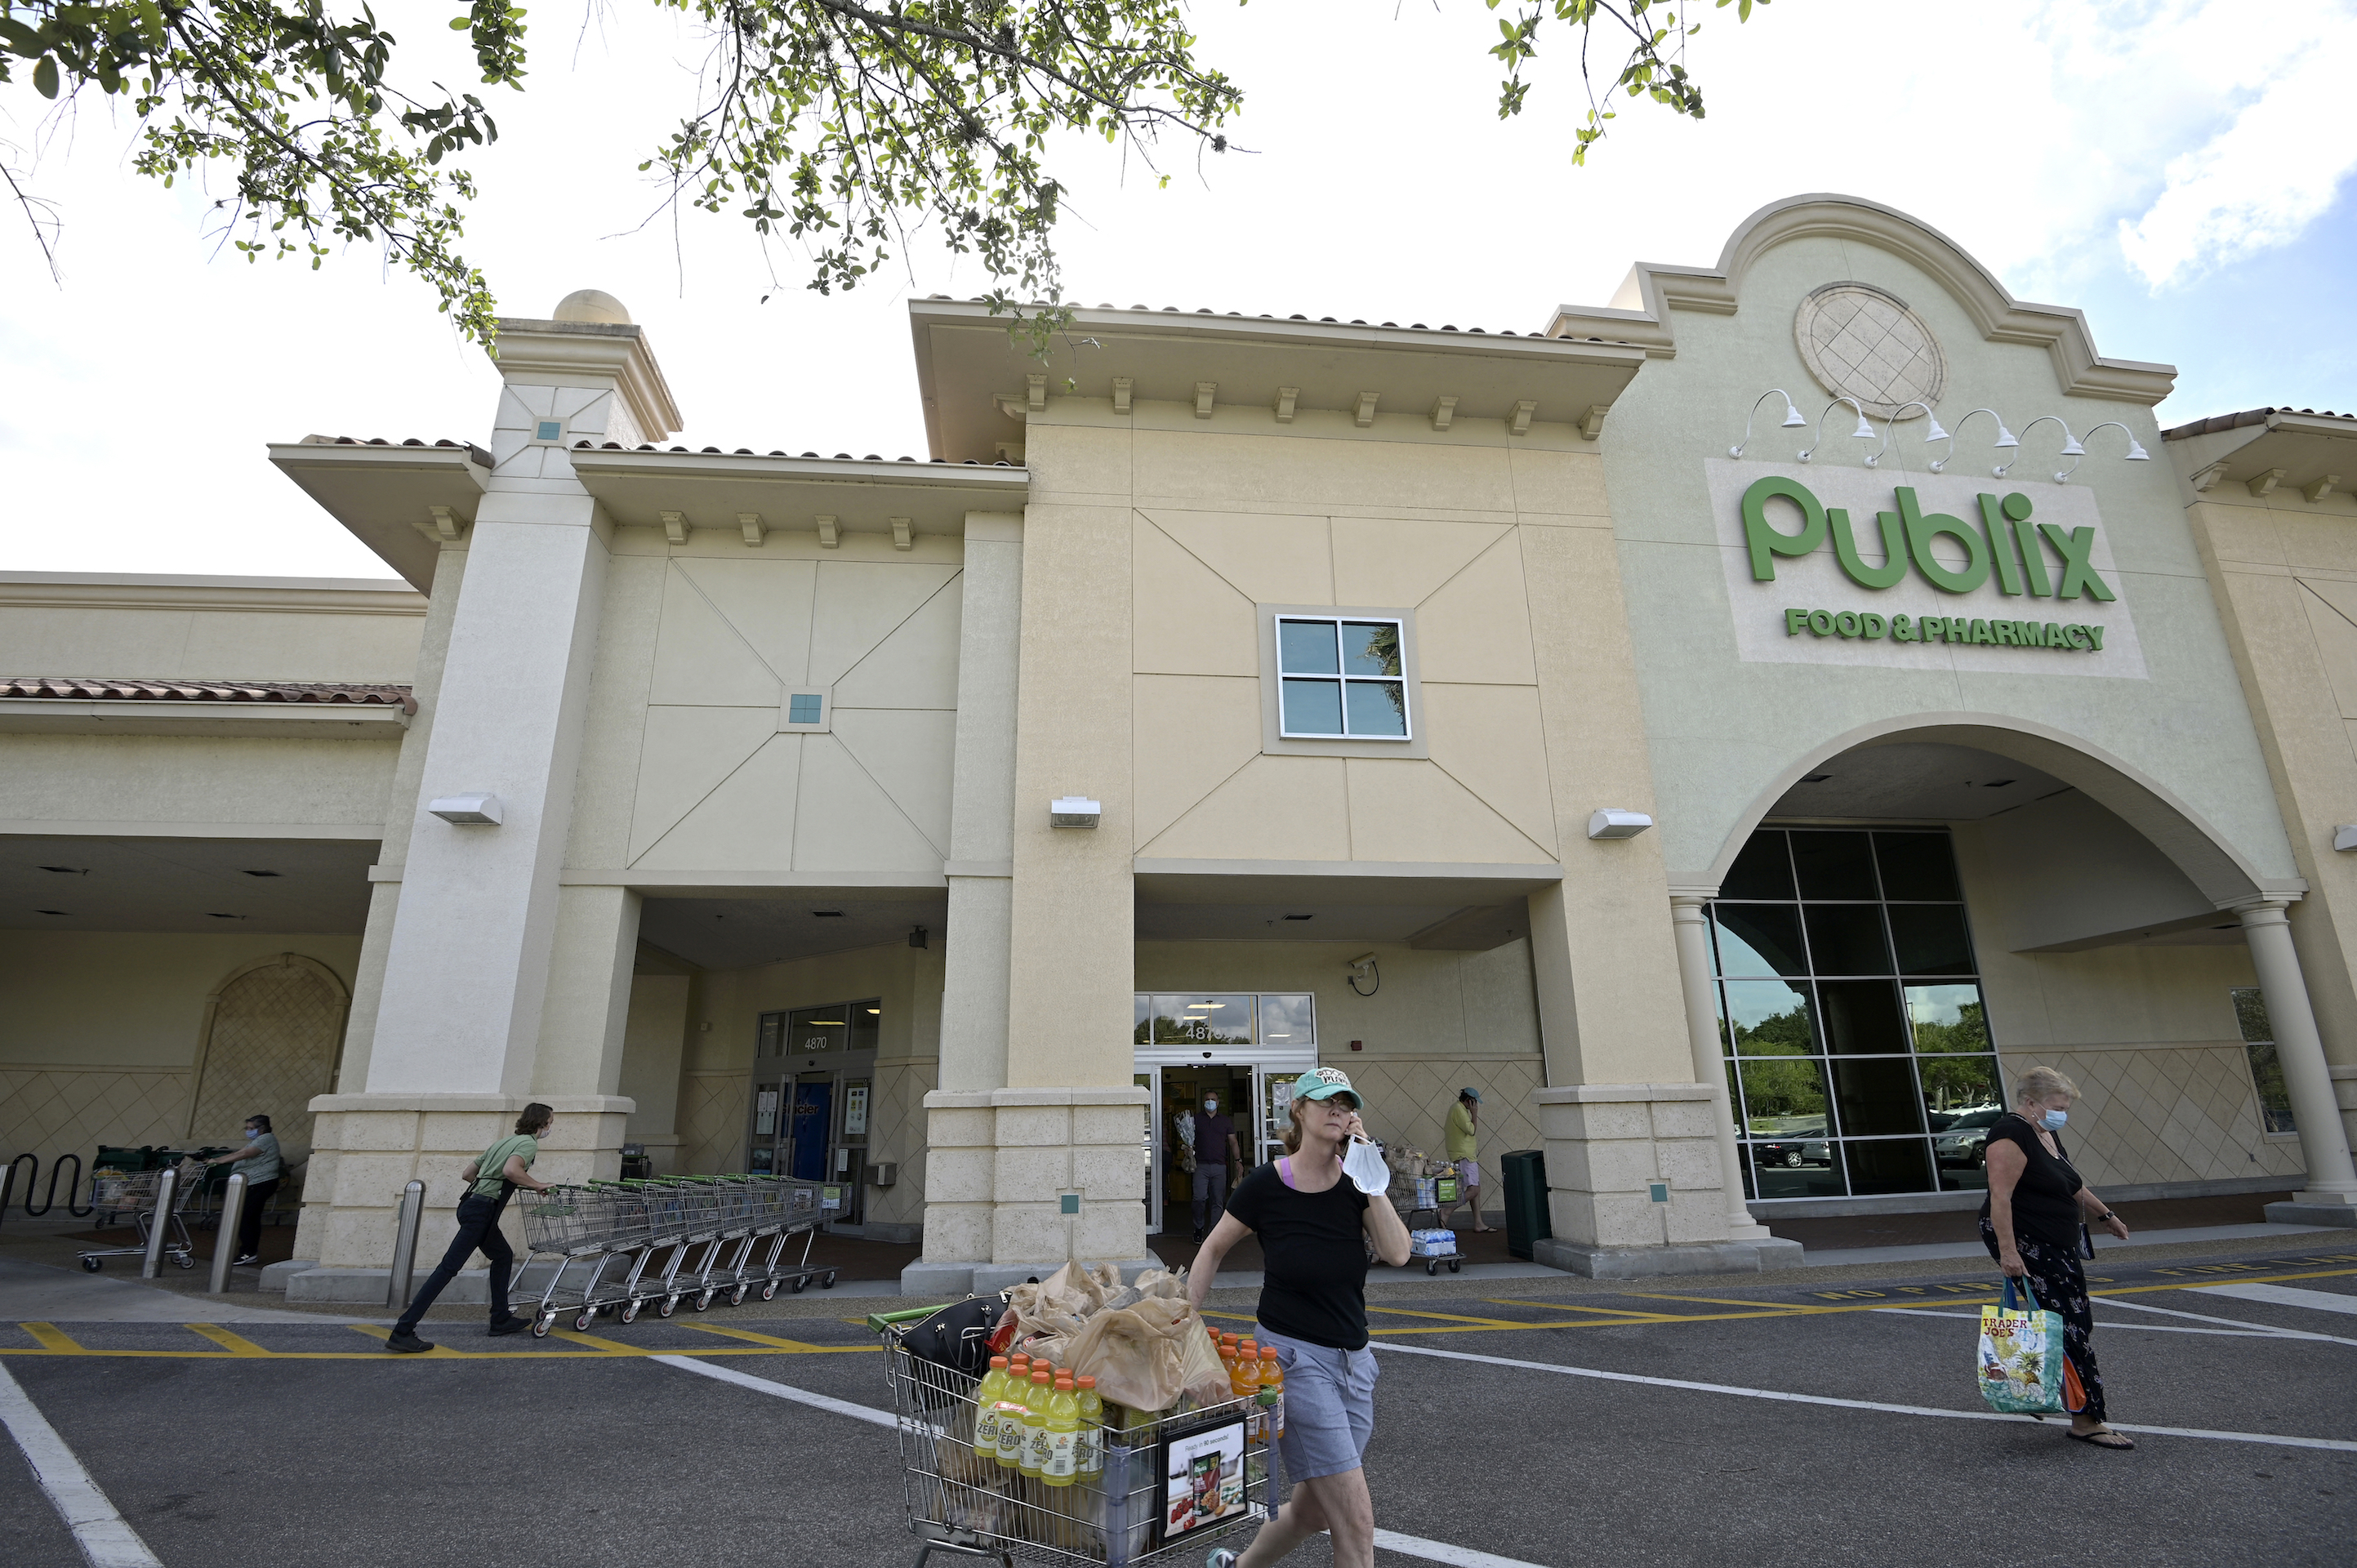 A Publix Worker Died of COVID After He Wasn